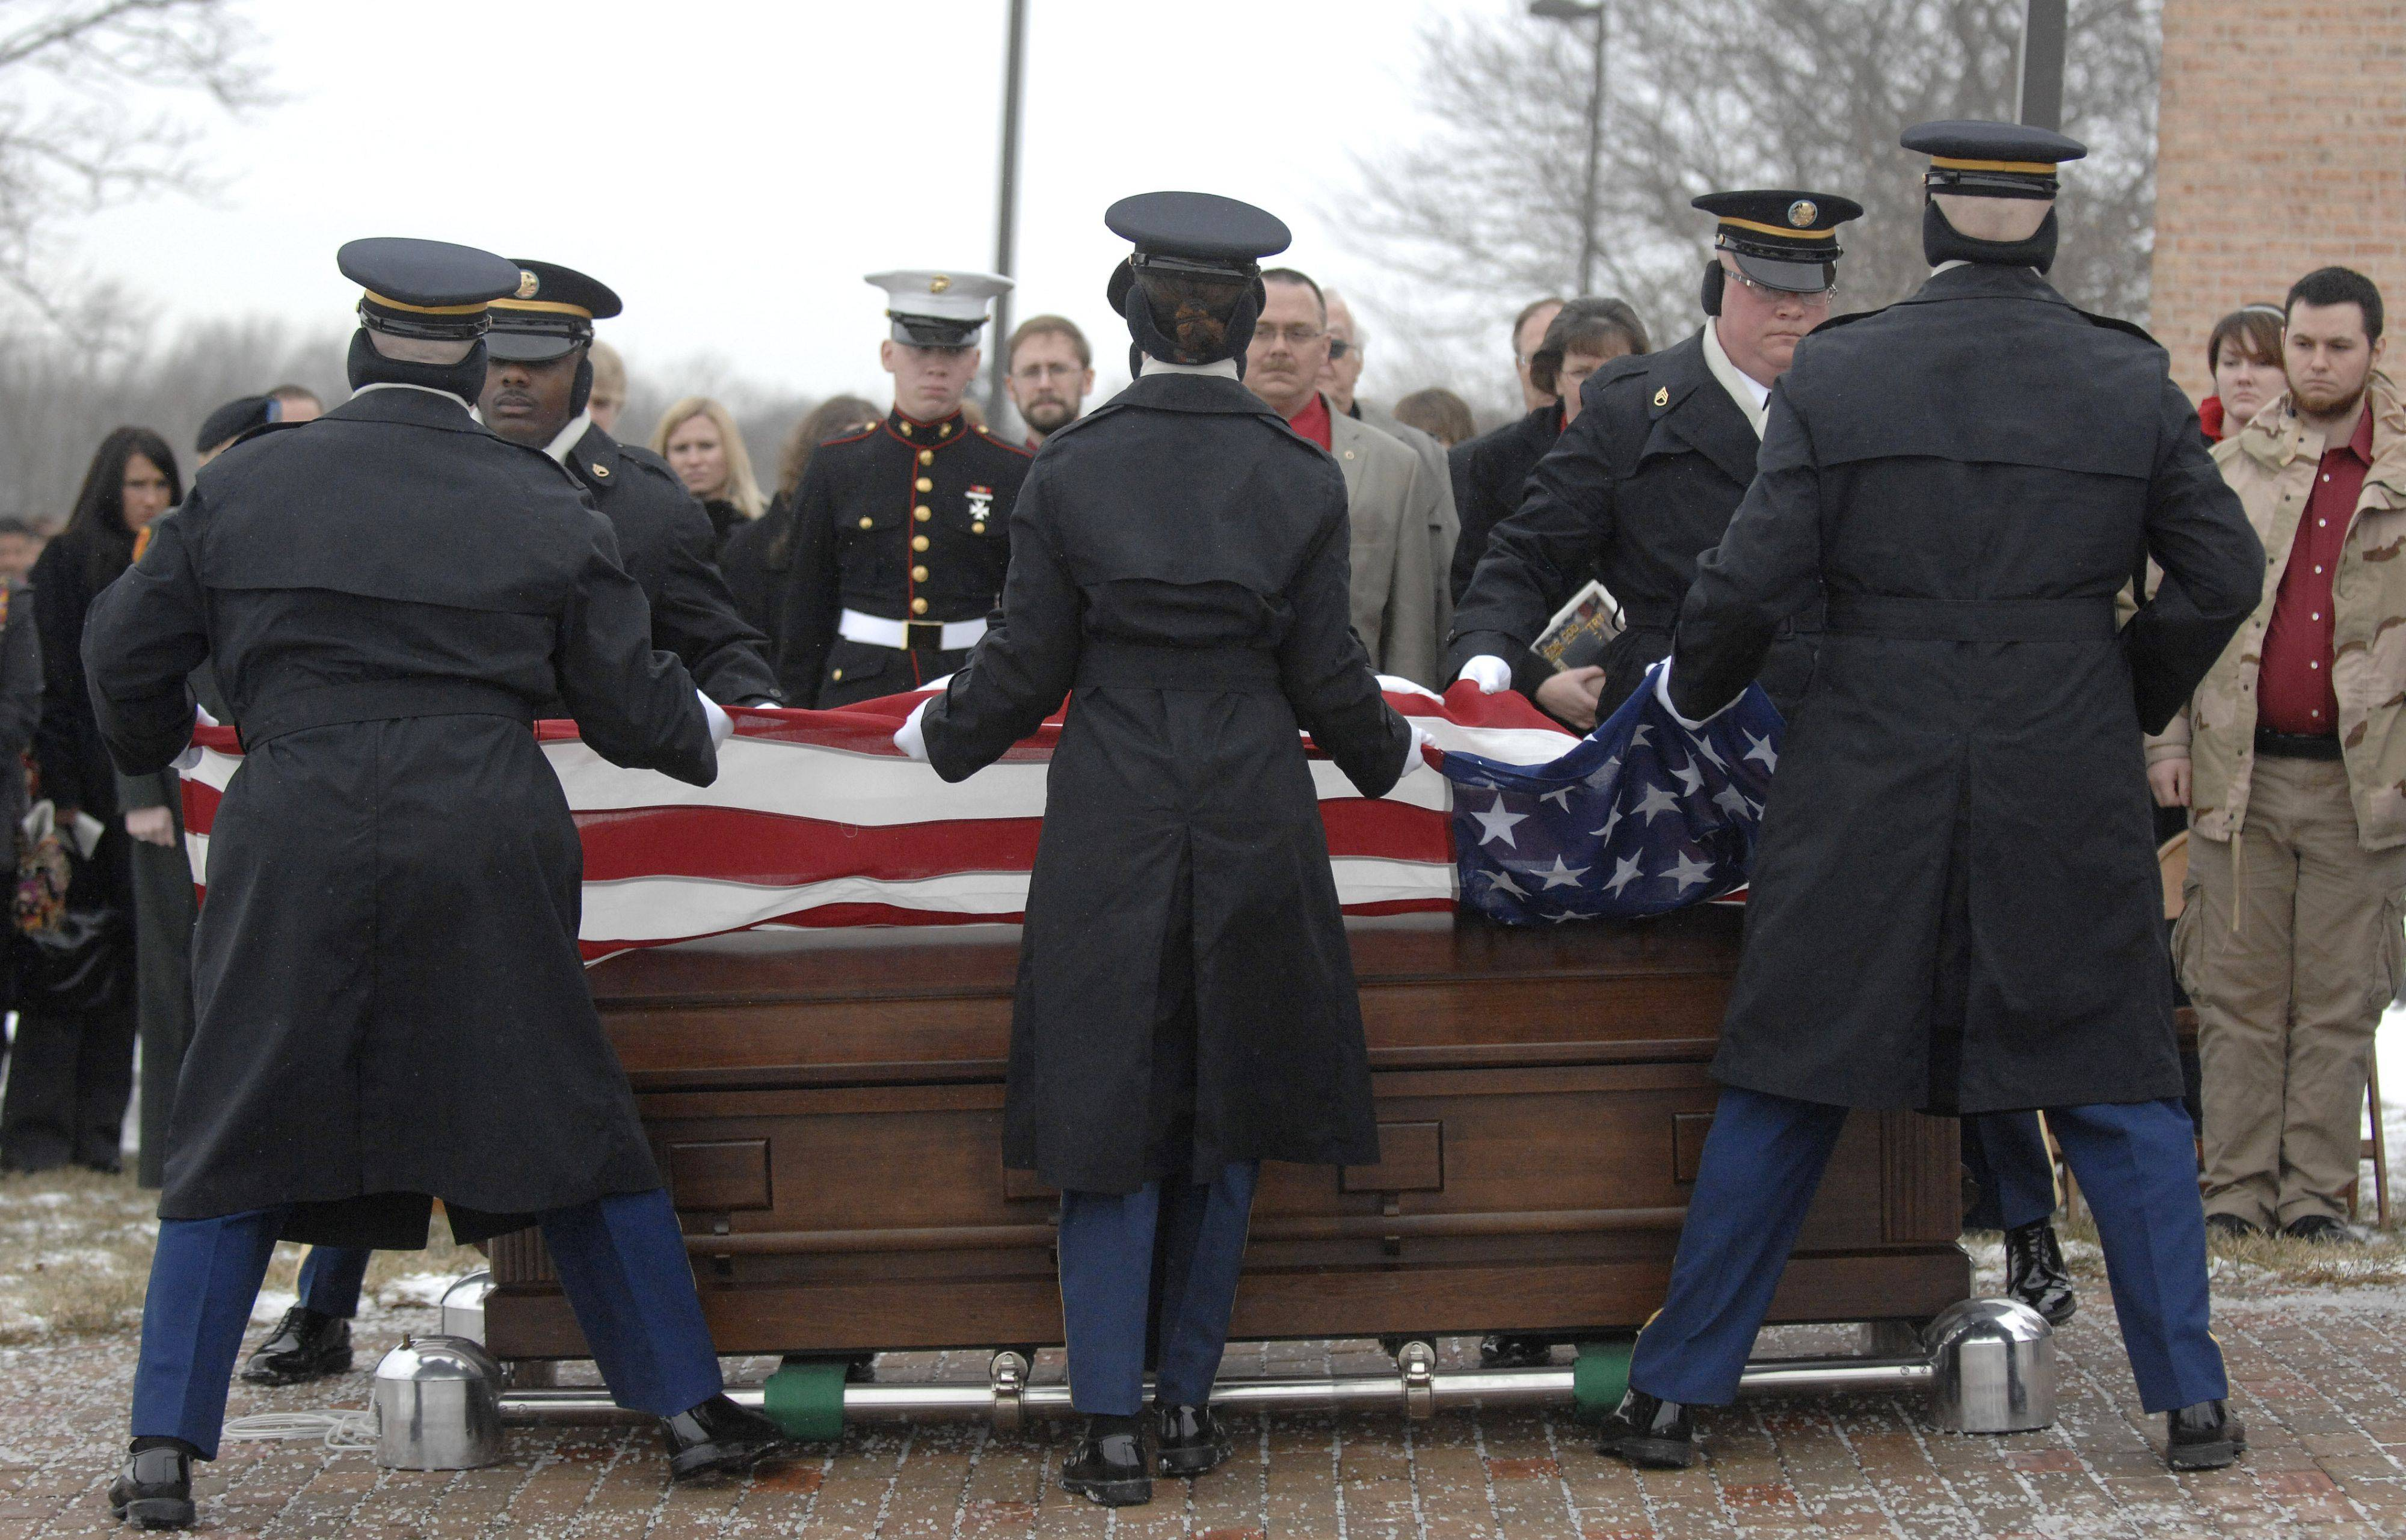 The Ceremonial Unit of the Indiana National Honor Guard fold the flag on Spc. Christopher A. Patterson's casket to be given to his family after his funeral and full military honors at Immanuel Lutheran Church in Batavia on Saturday, January 21.